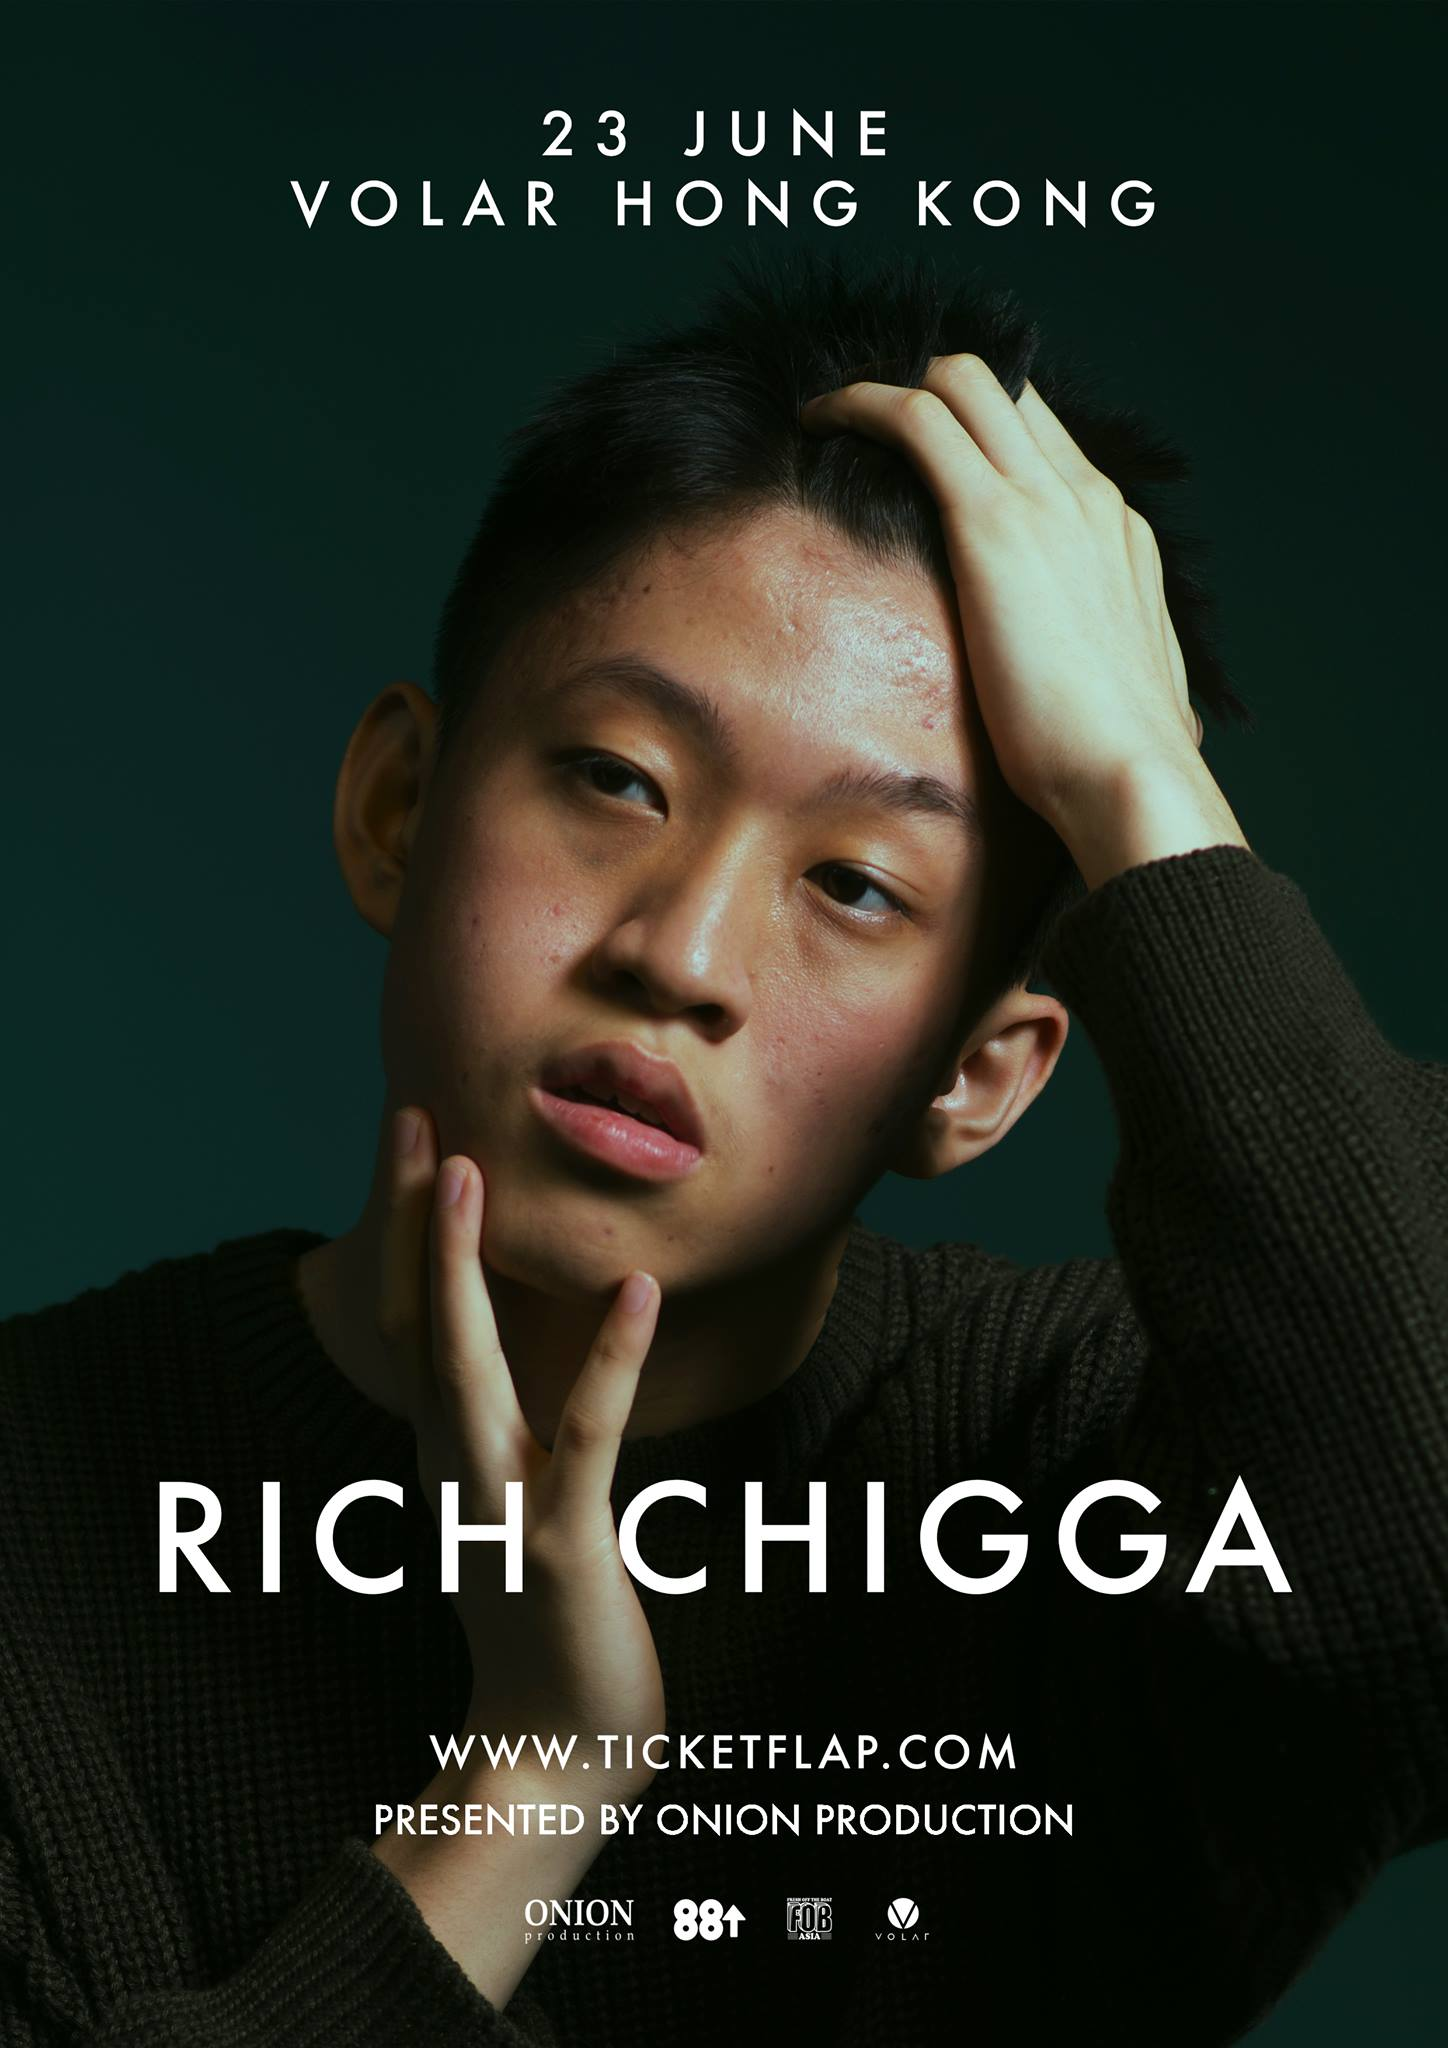 Rich chigga live in hong kong tickets fri 23rd june 1000 pm till event details stopboris Image collections